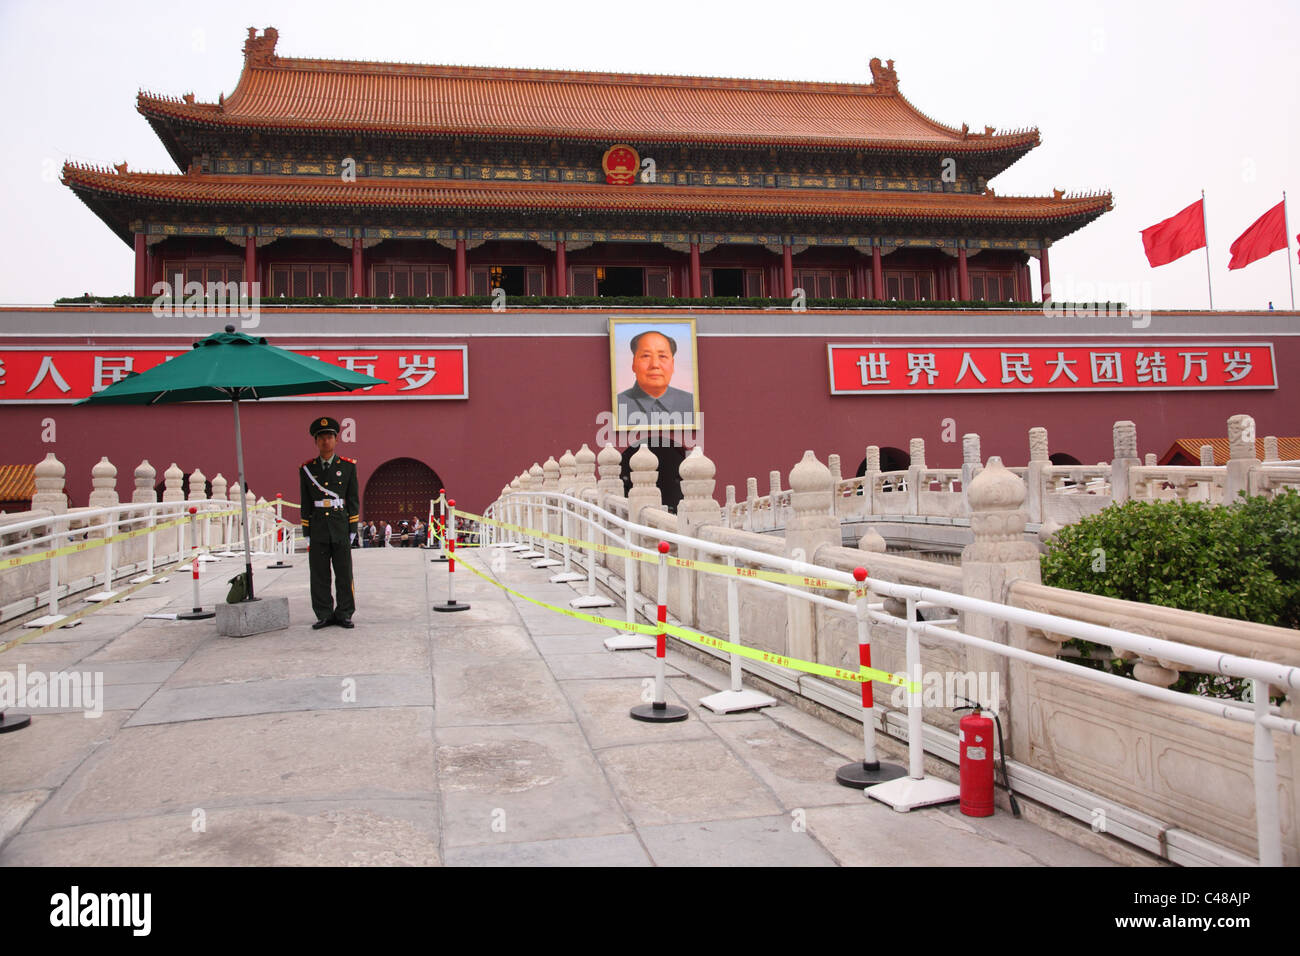 Forbidden City, Tiananmen Square, Beijing, China - Stock Image